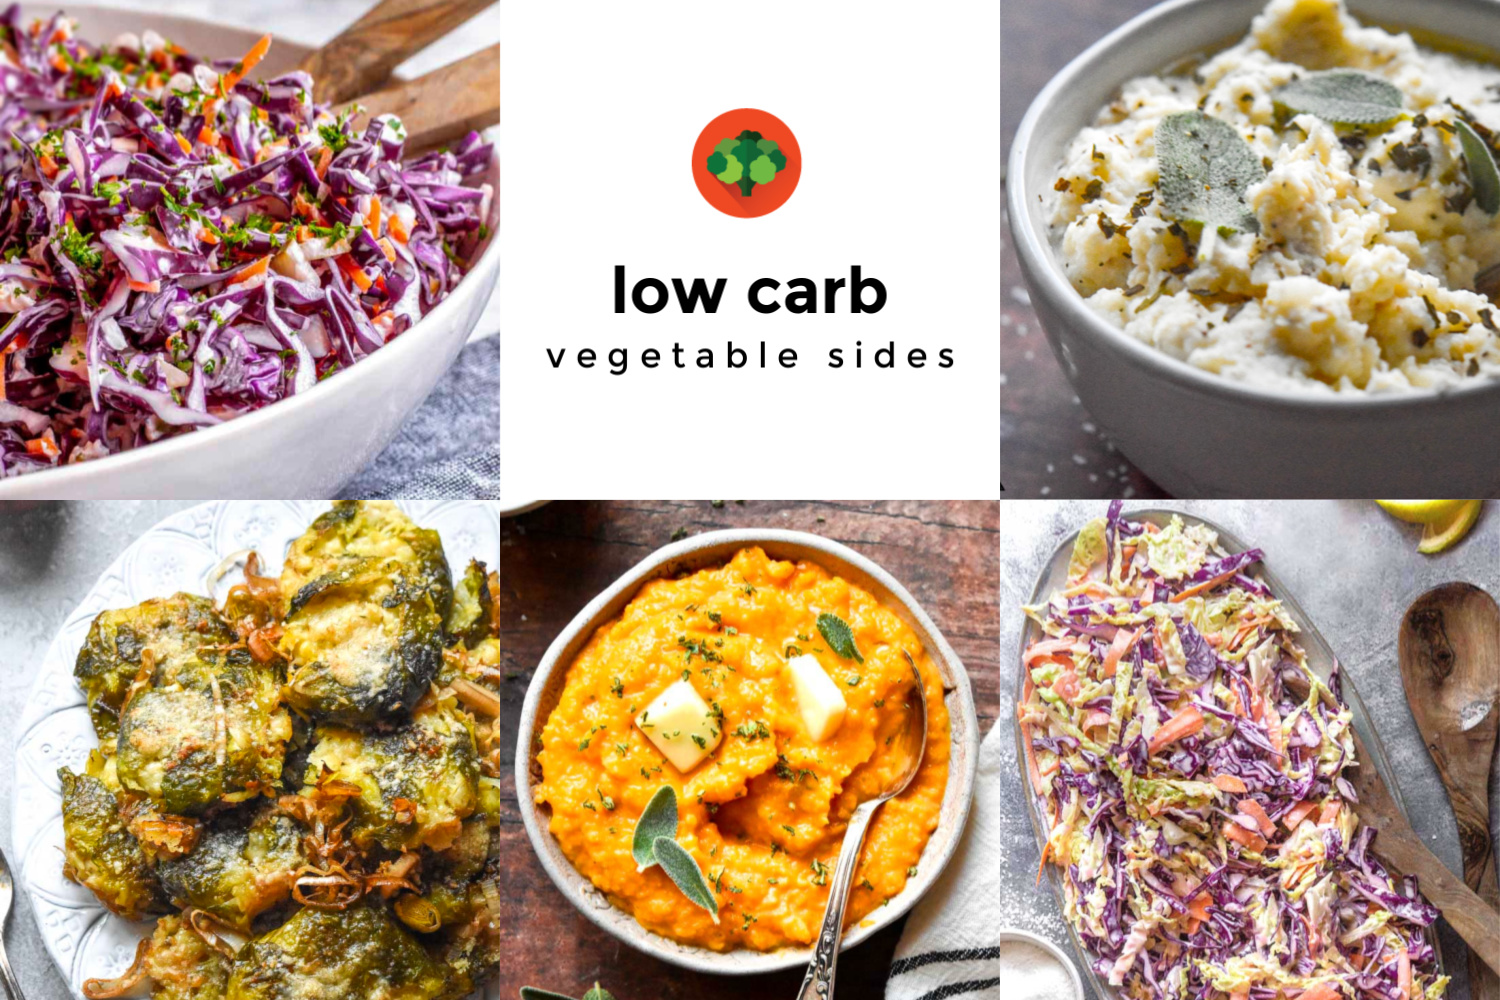 Collage of various low carb vegetable sides